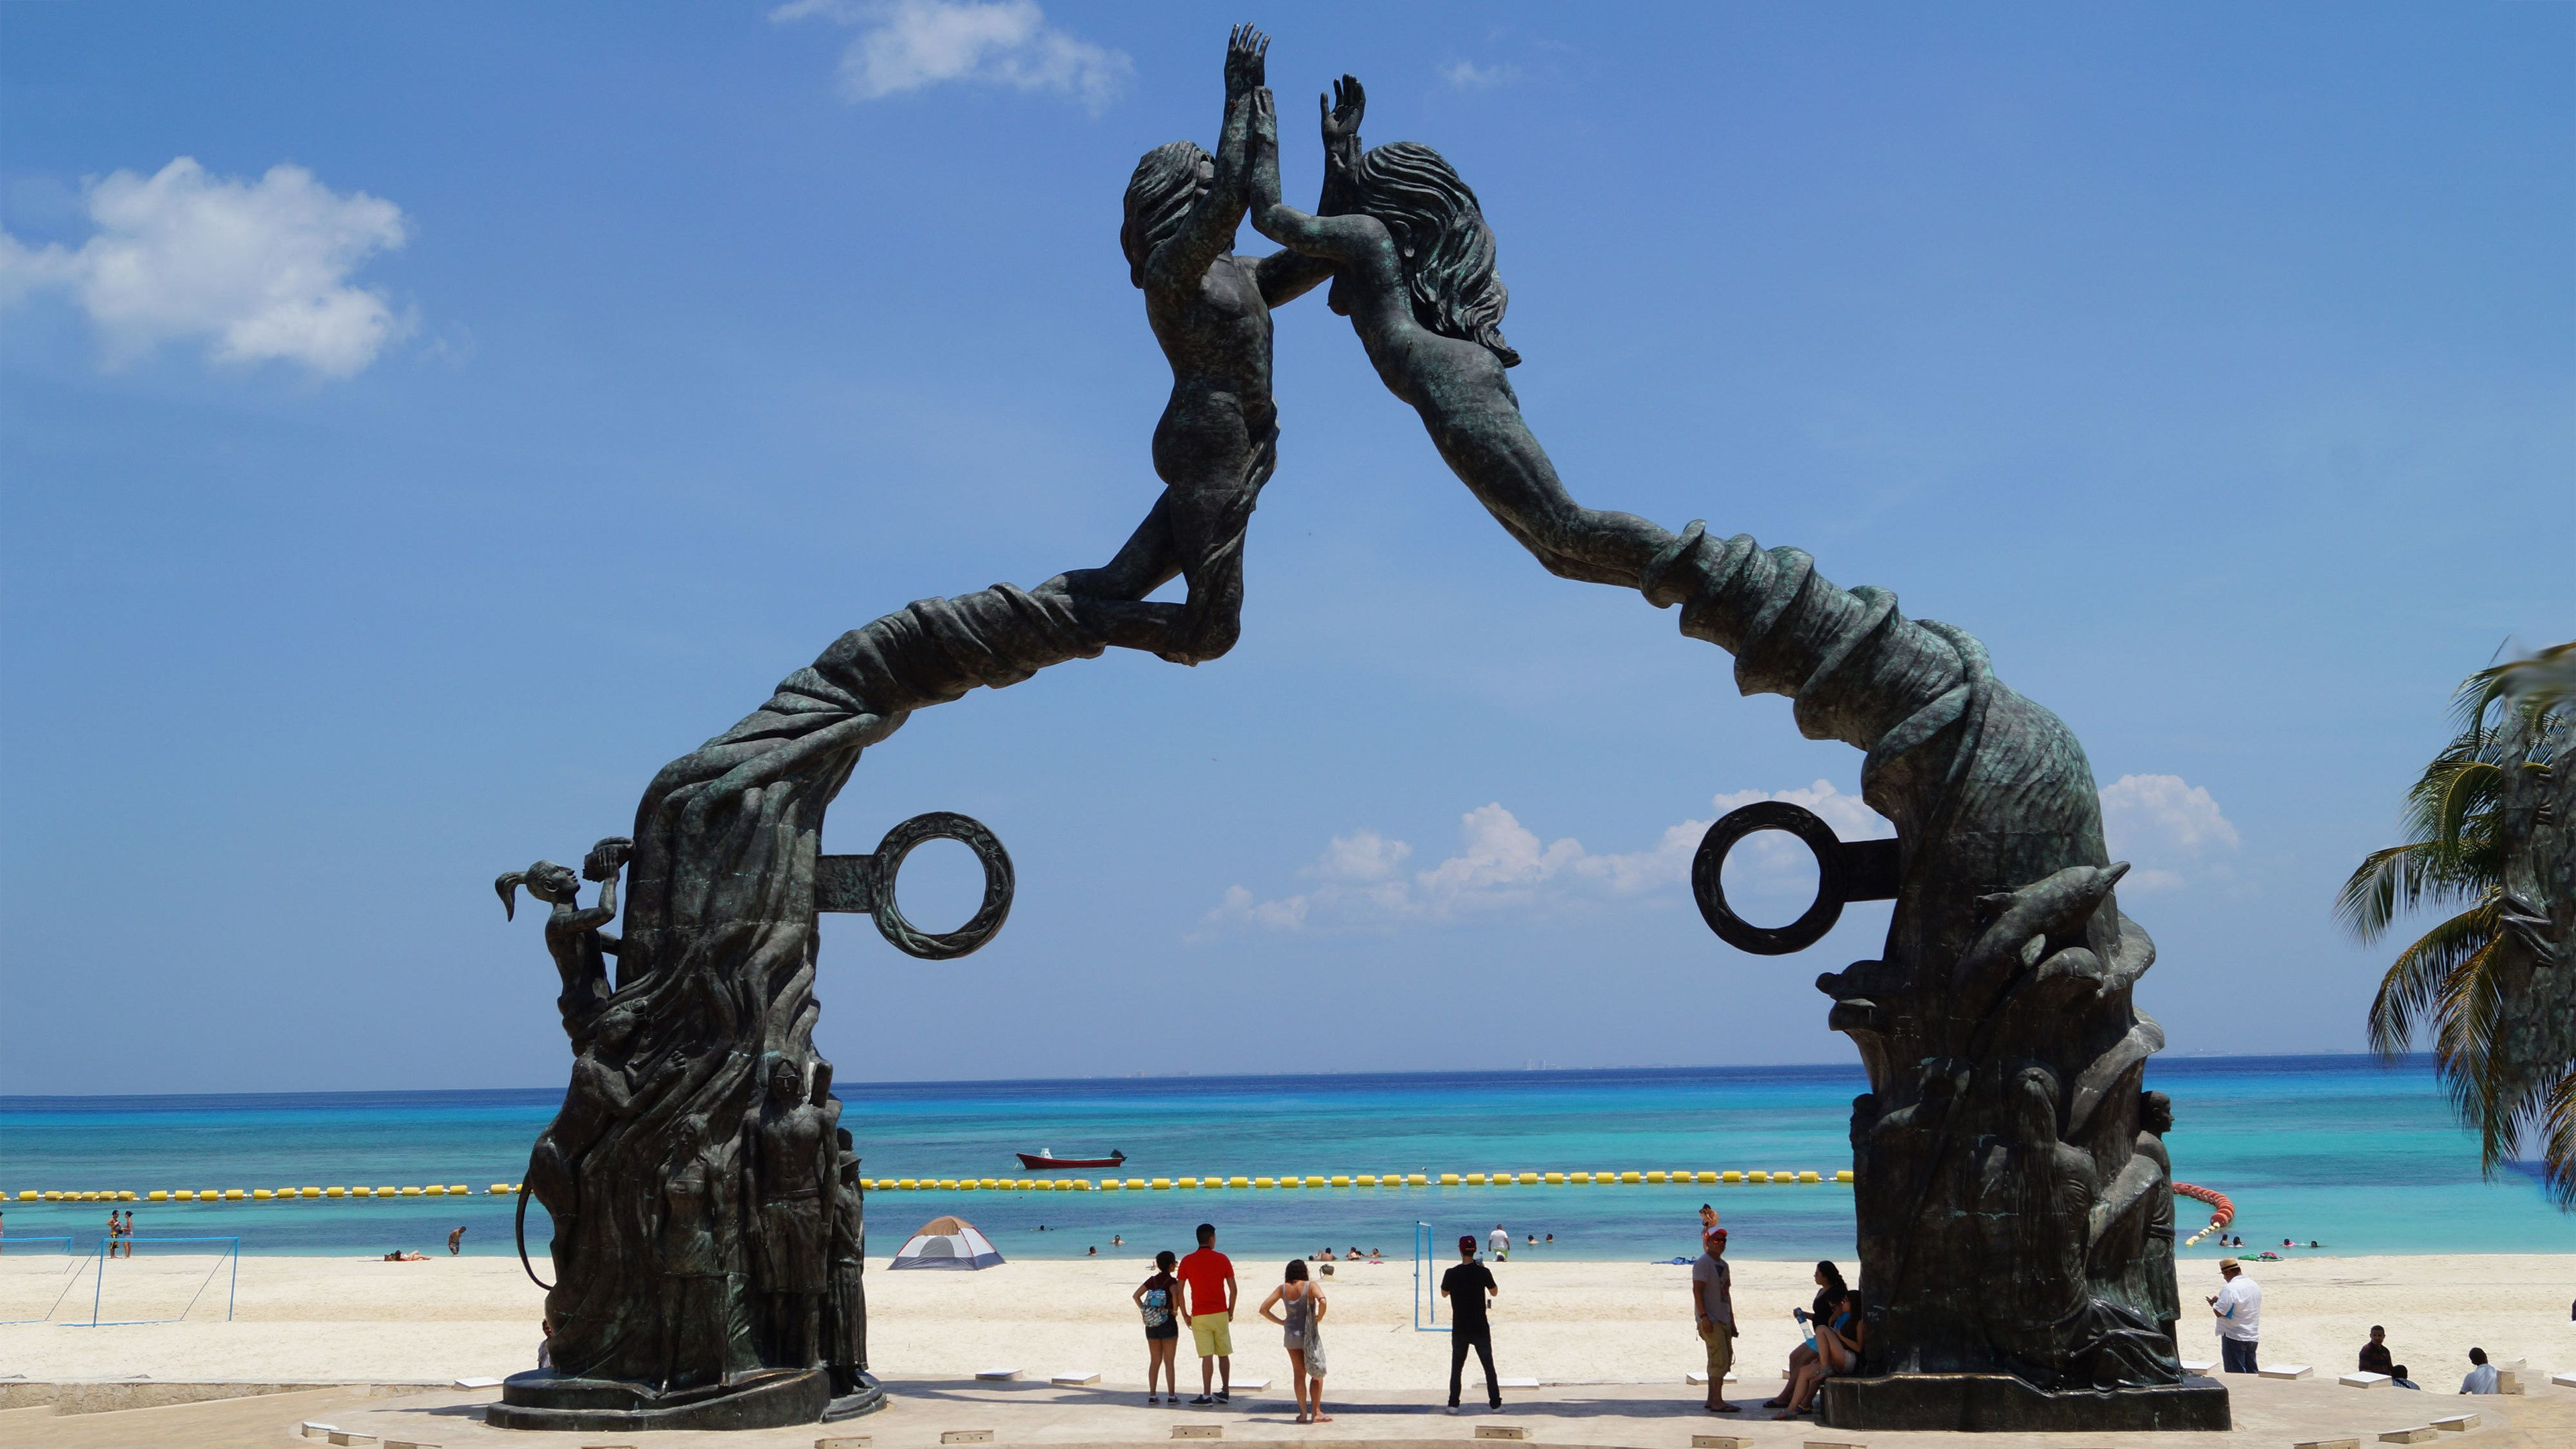 Large sculpture on the beach in Playa del Carmen